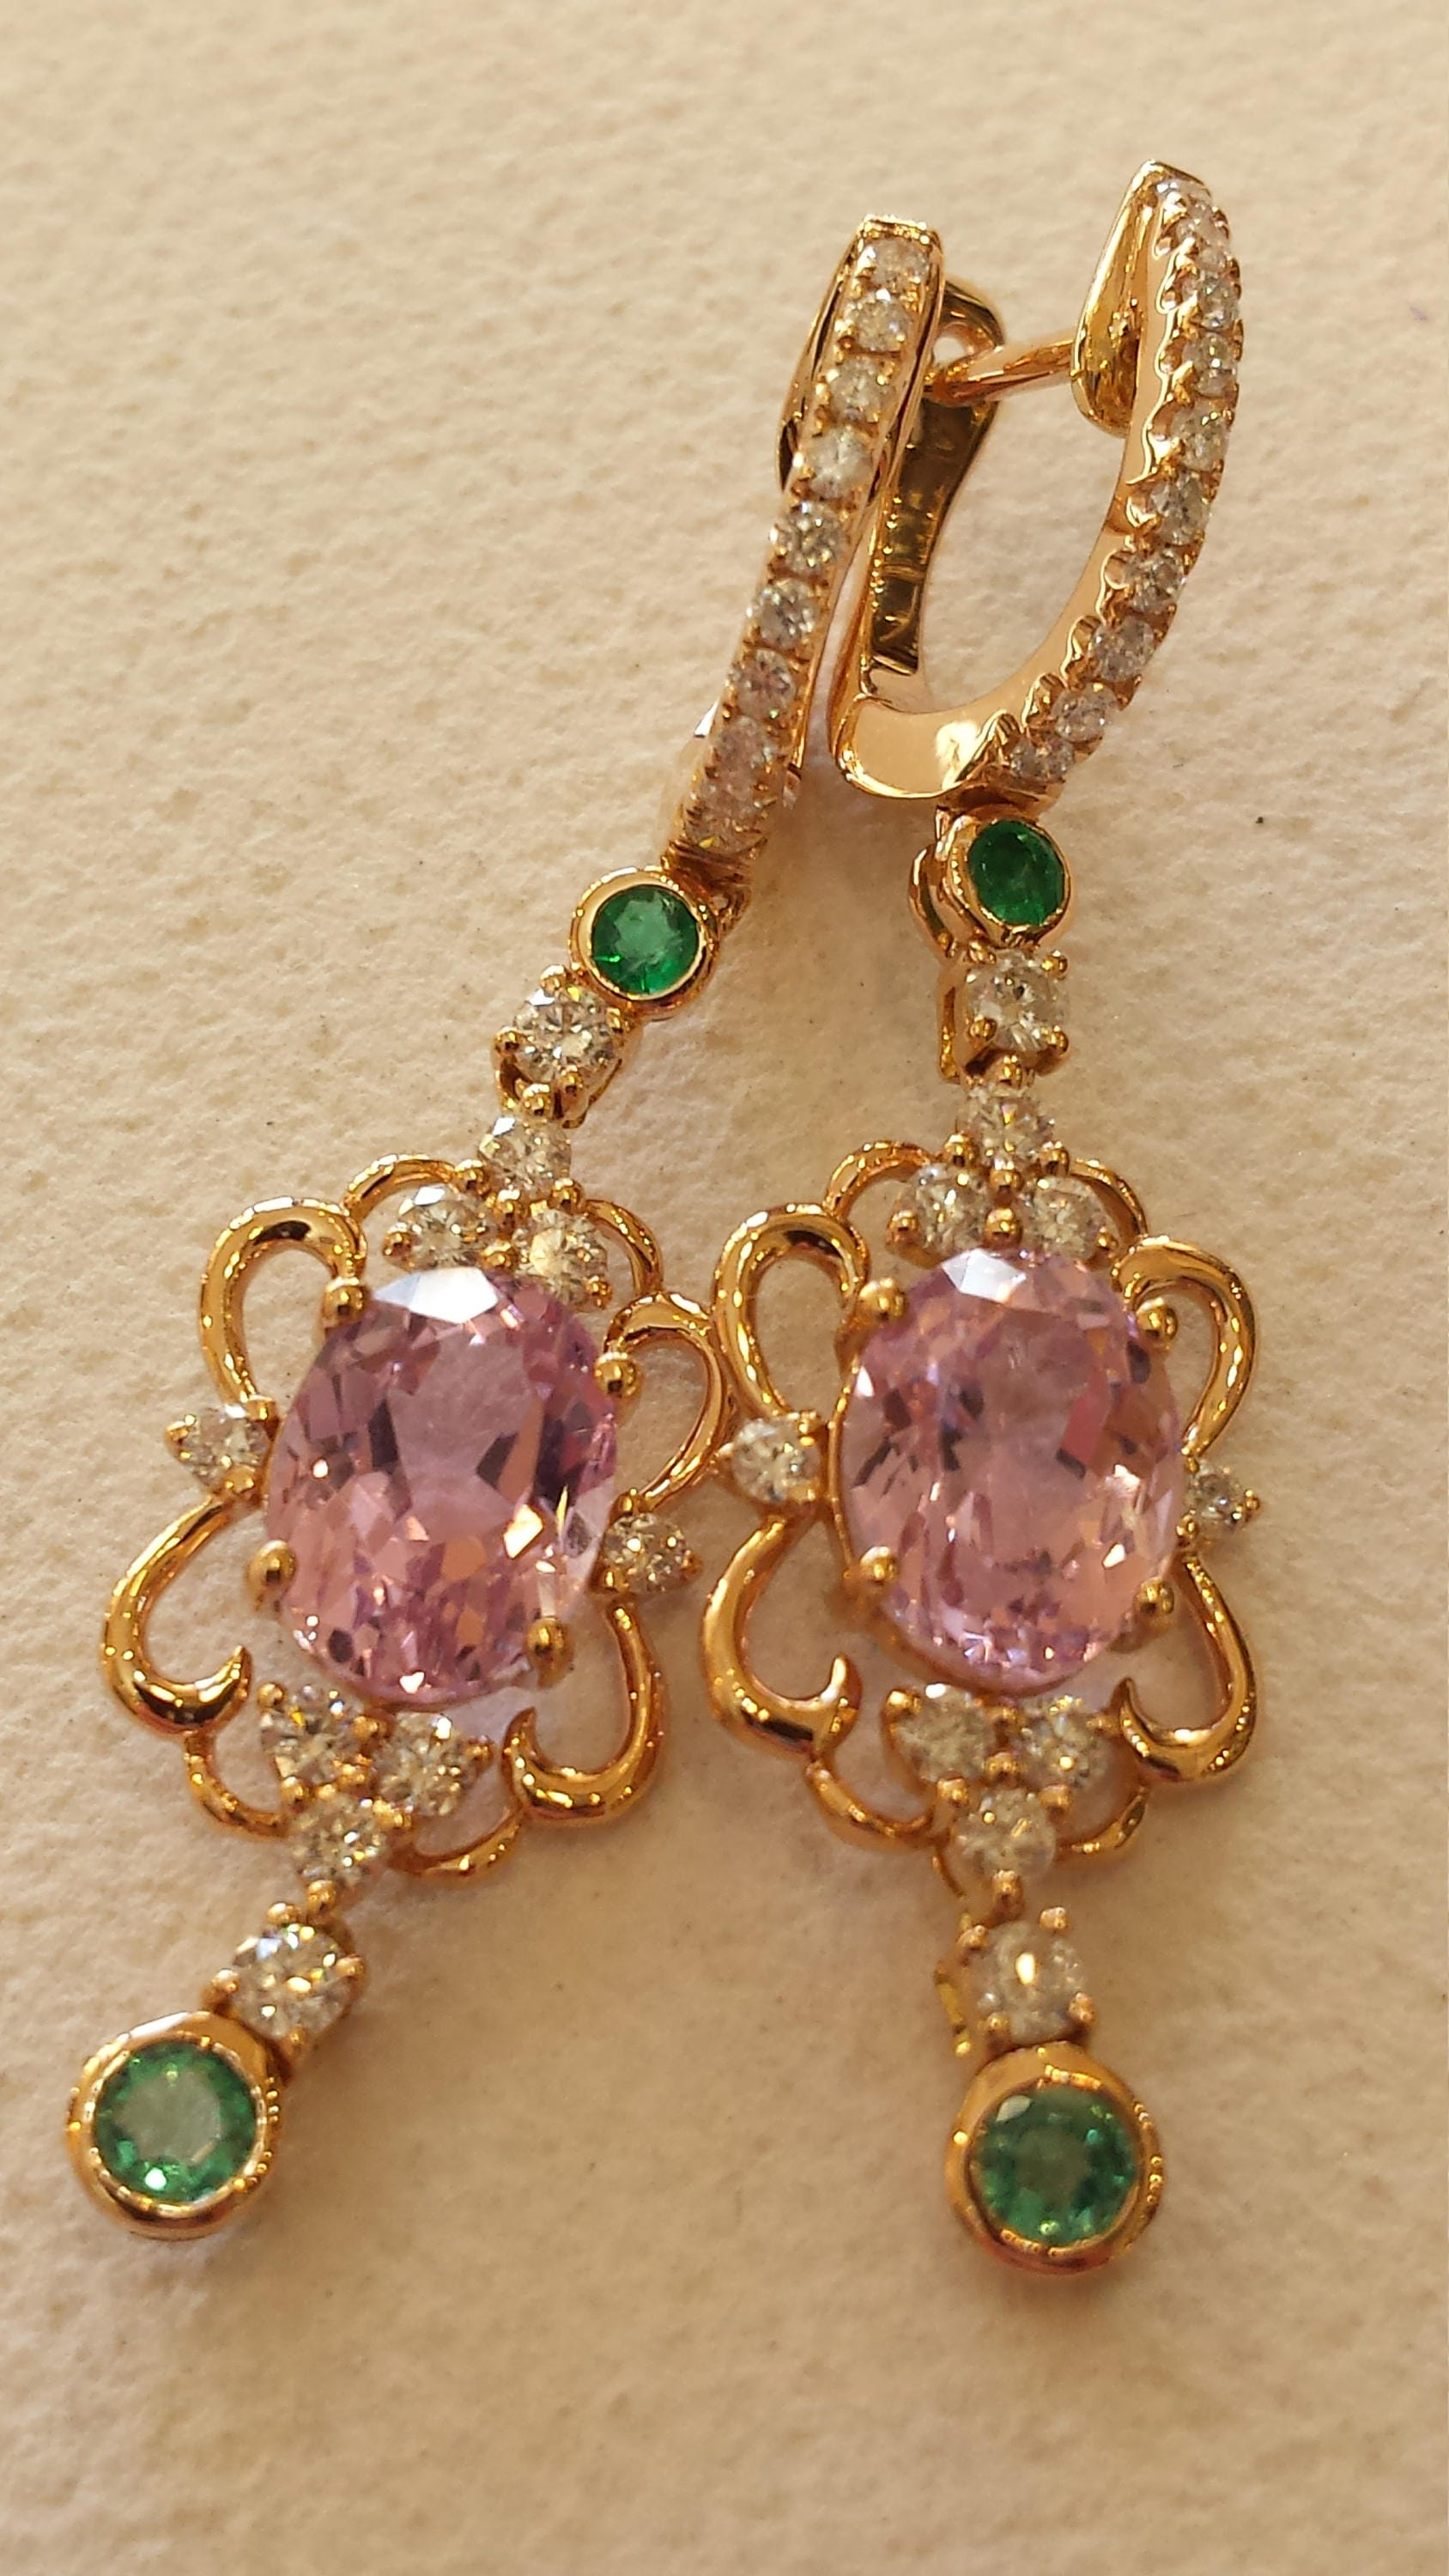 kunzite janice sterling in ocean girardi and white silver quartz earrings dangle